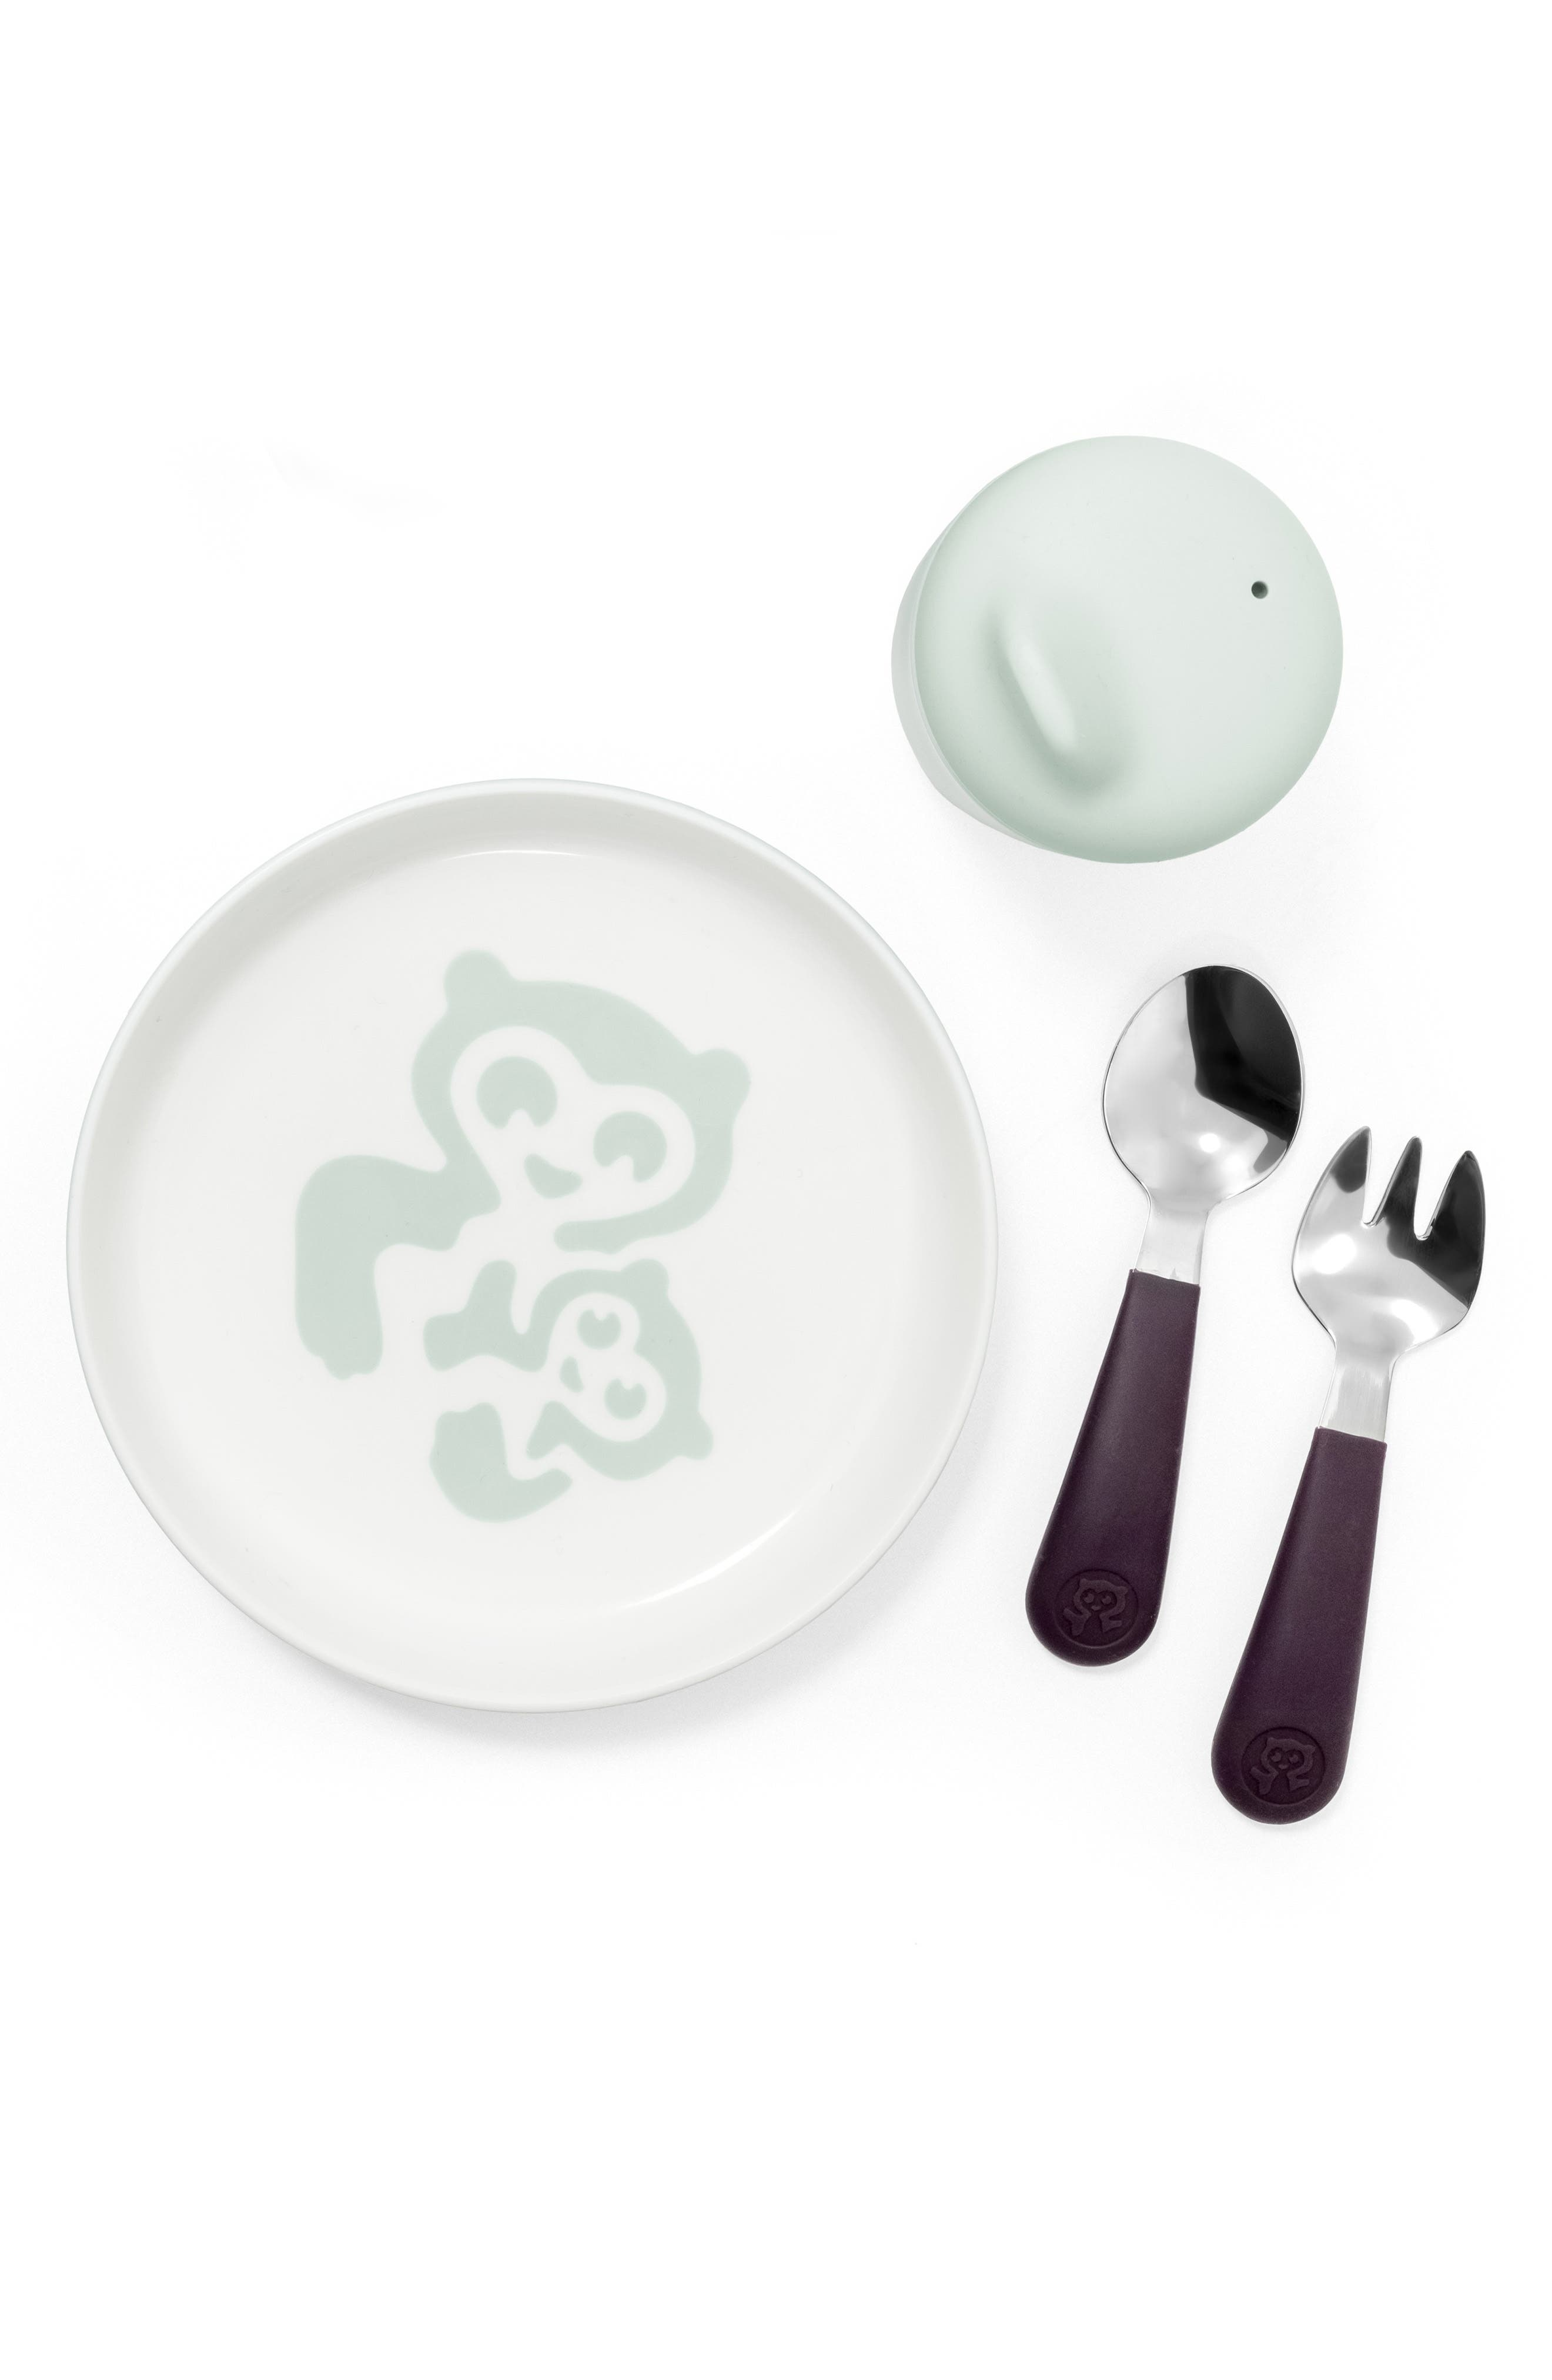 Infant Stokke Munch Essentials Sippy Cup Plate Fork  Spoon Set Size One Size  Green